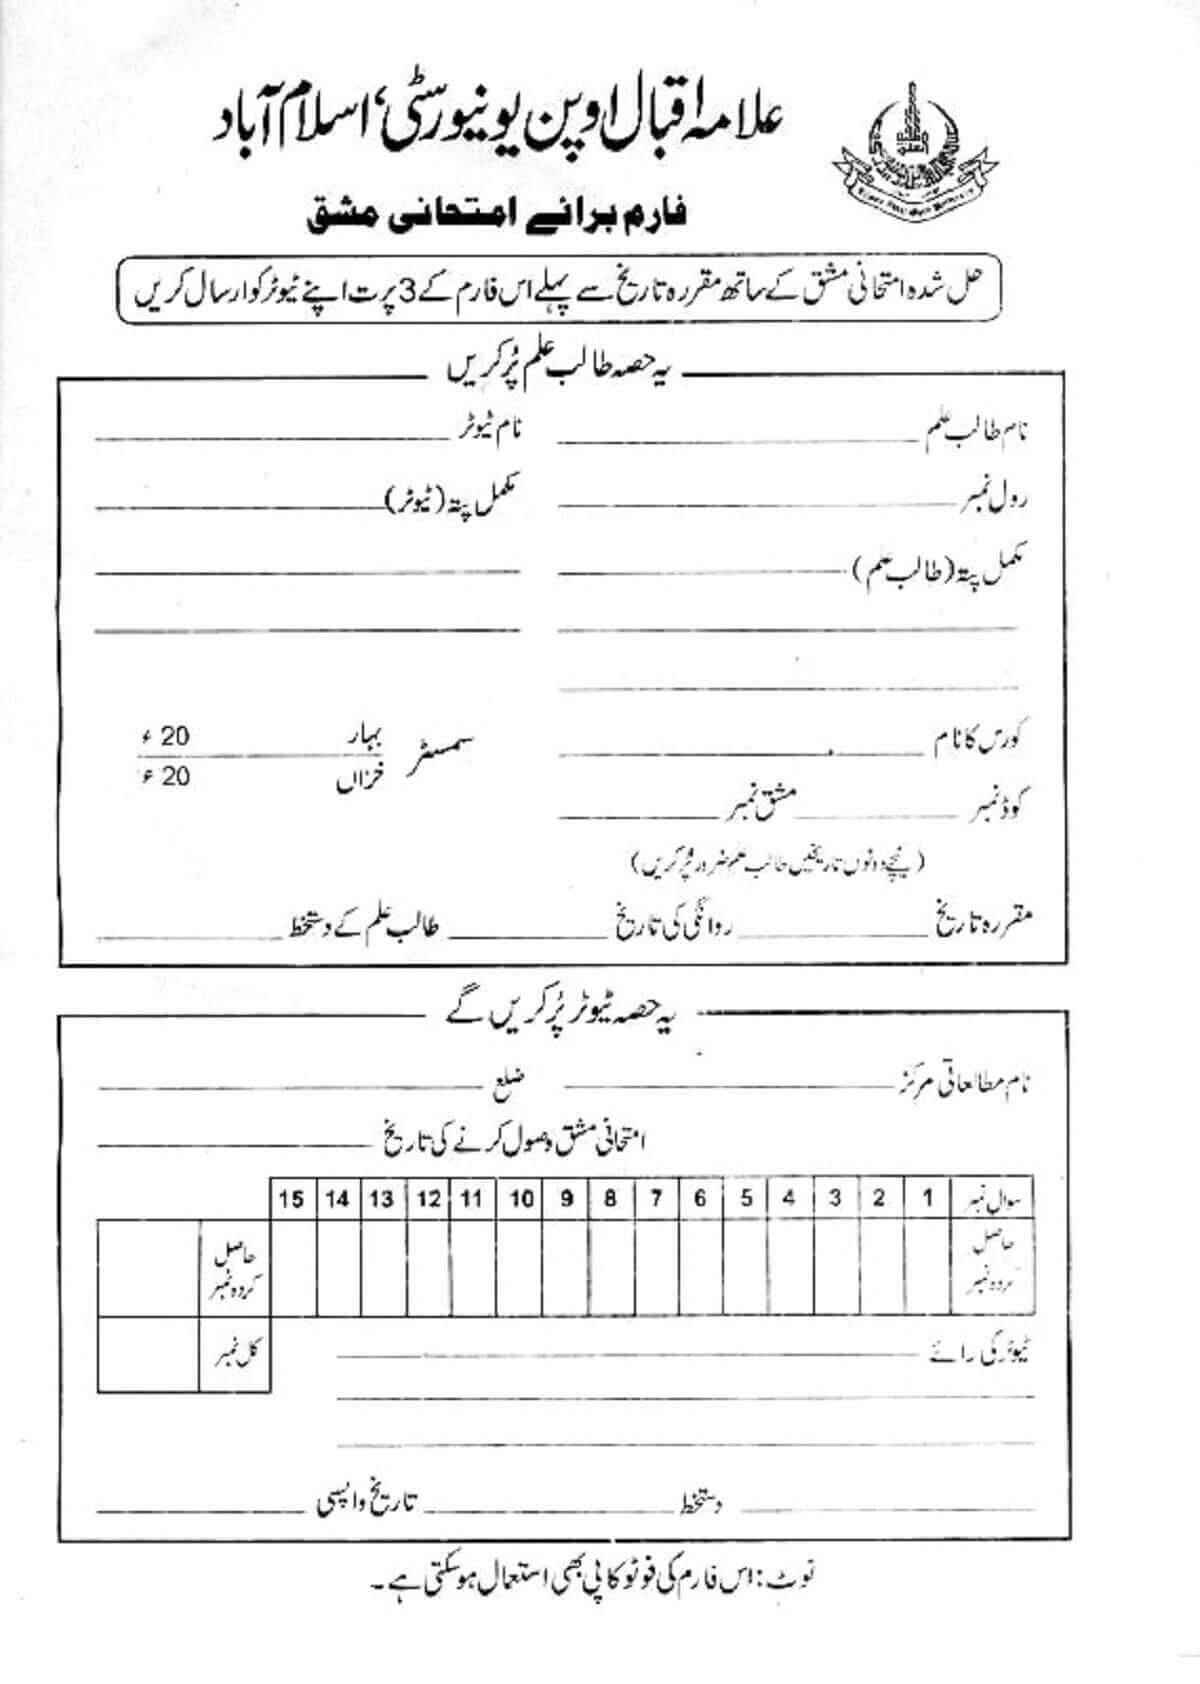 Assignment Marks Form Parat Download For Aiou Allama Iqbal Open University Aiou